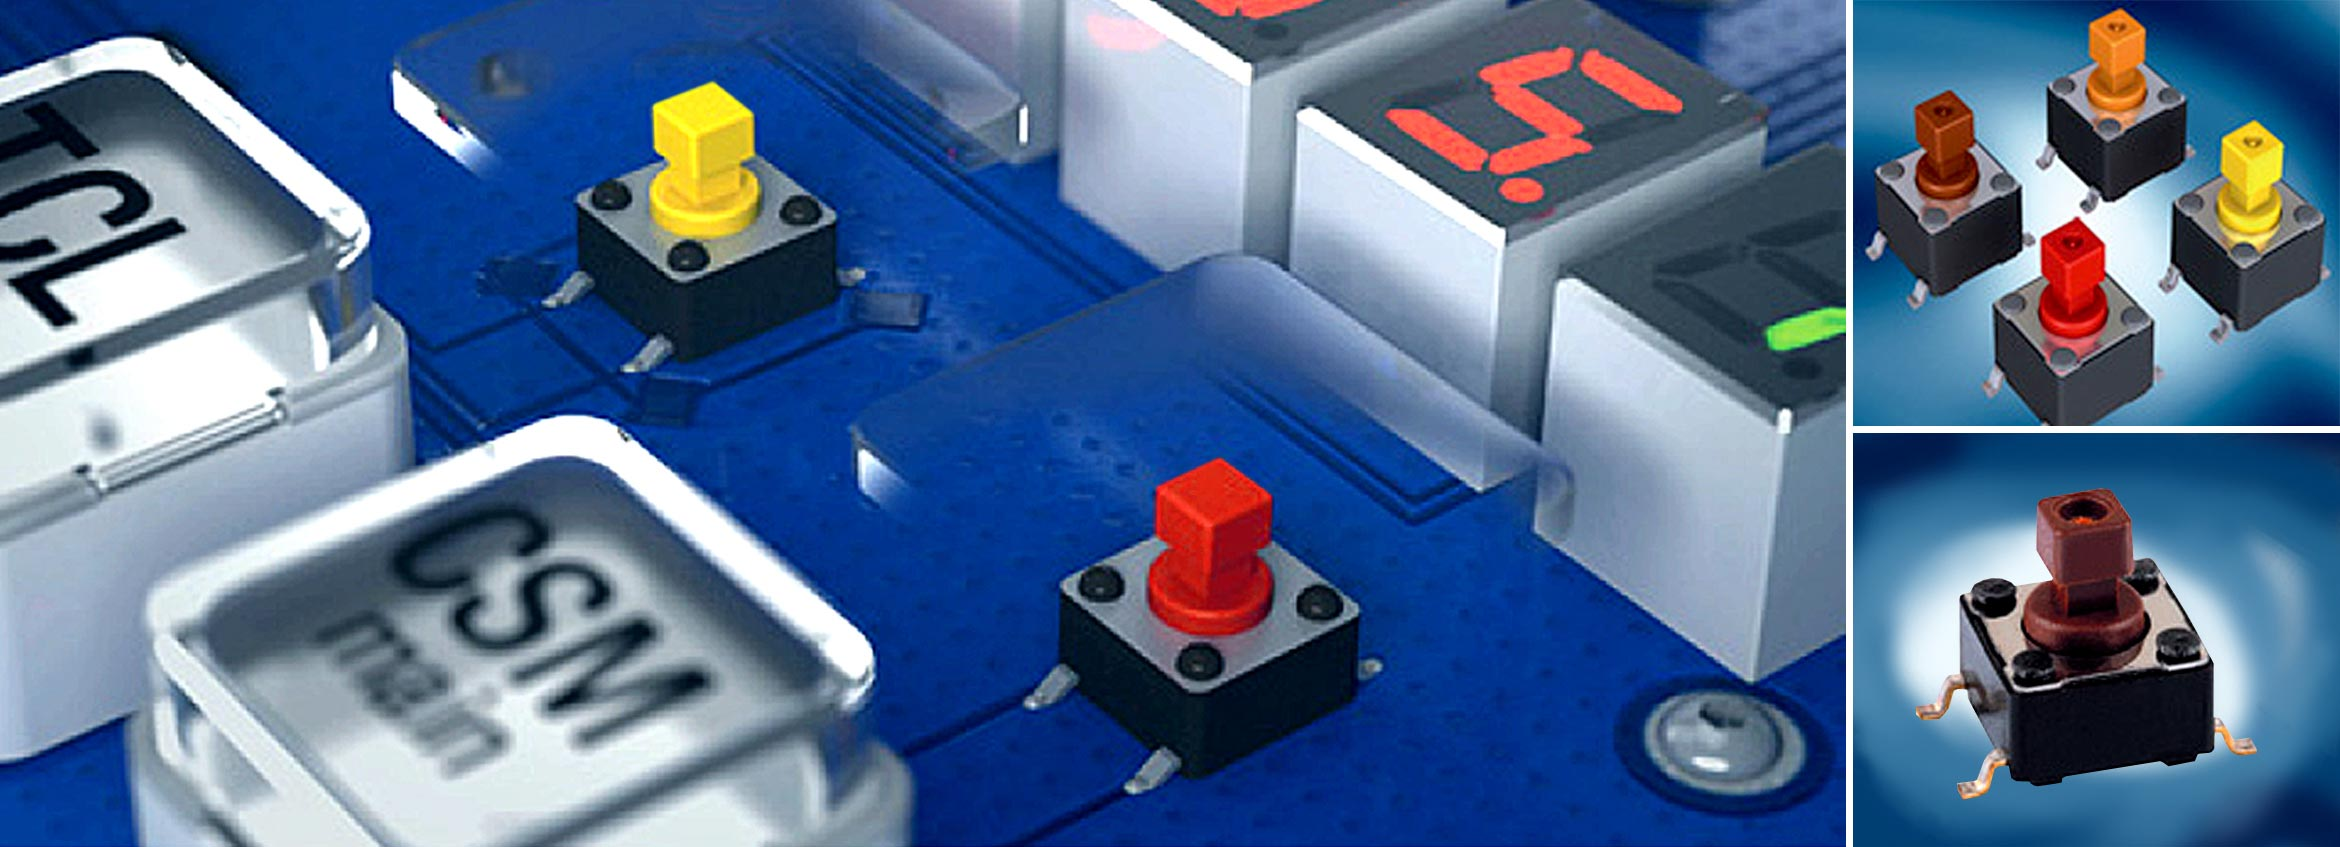 SMD switch banner